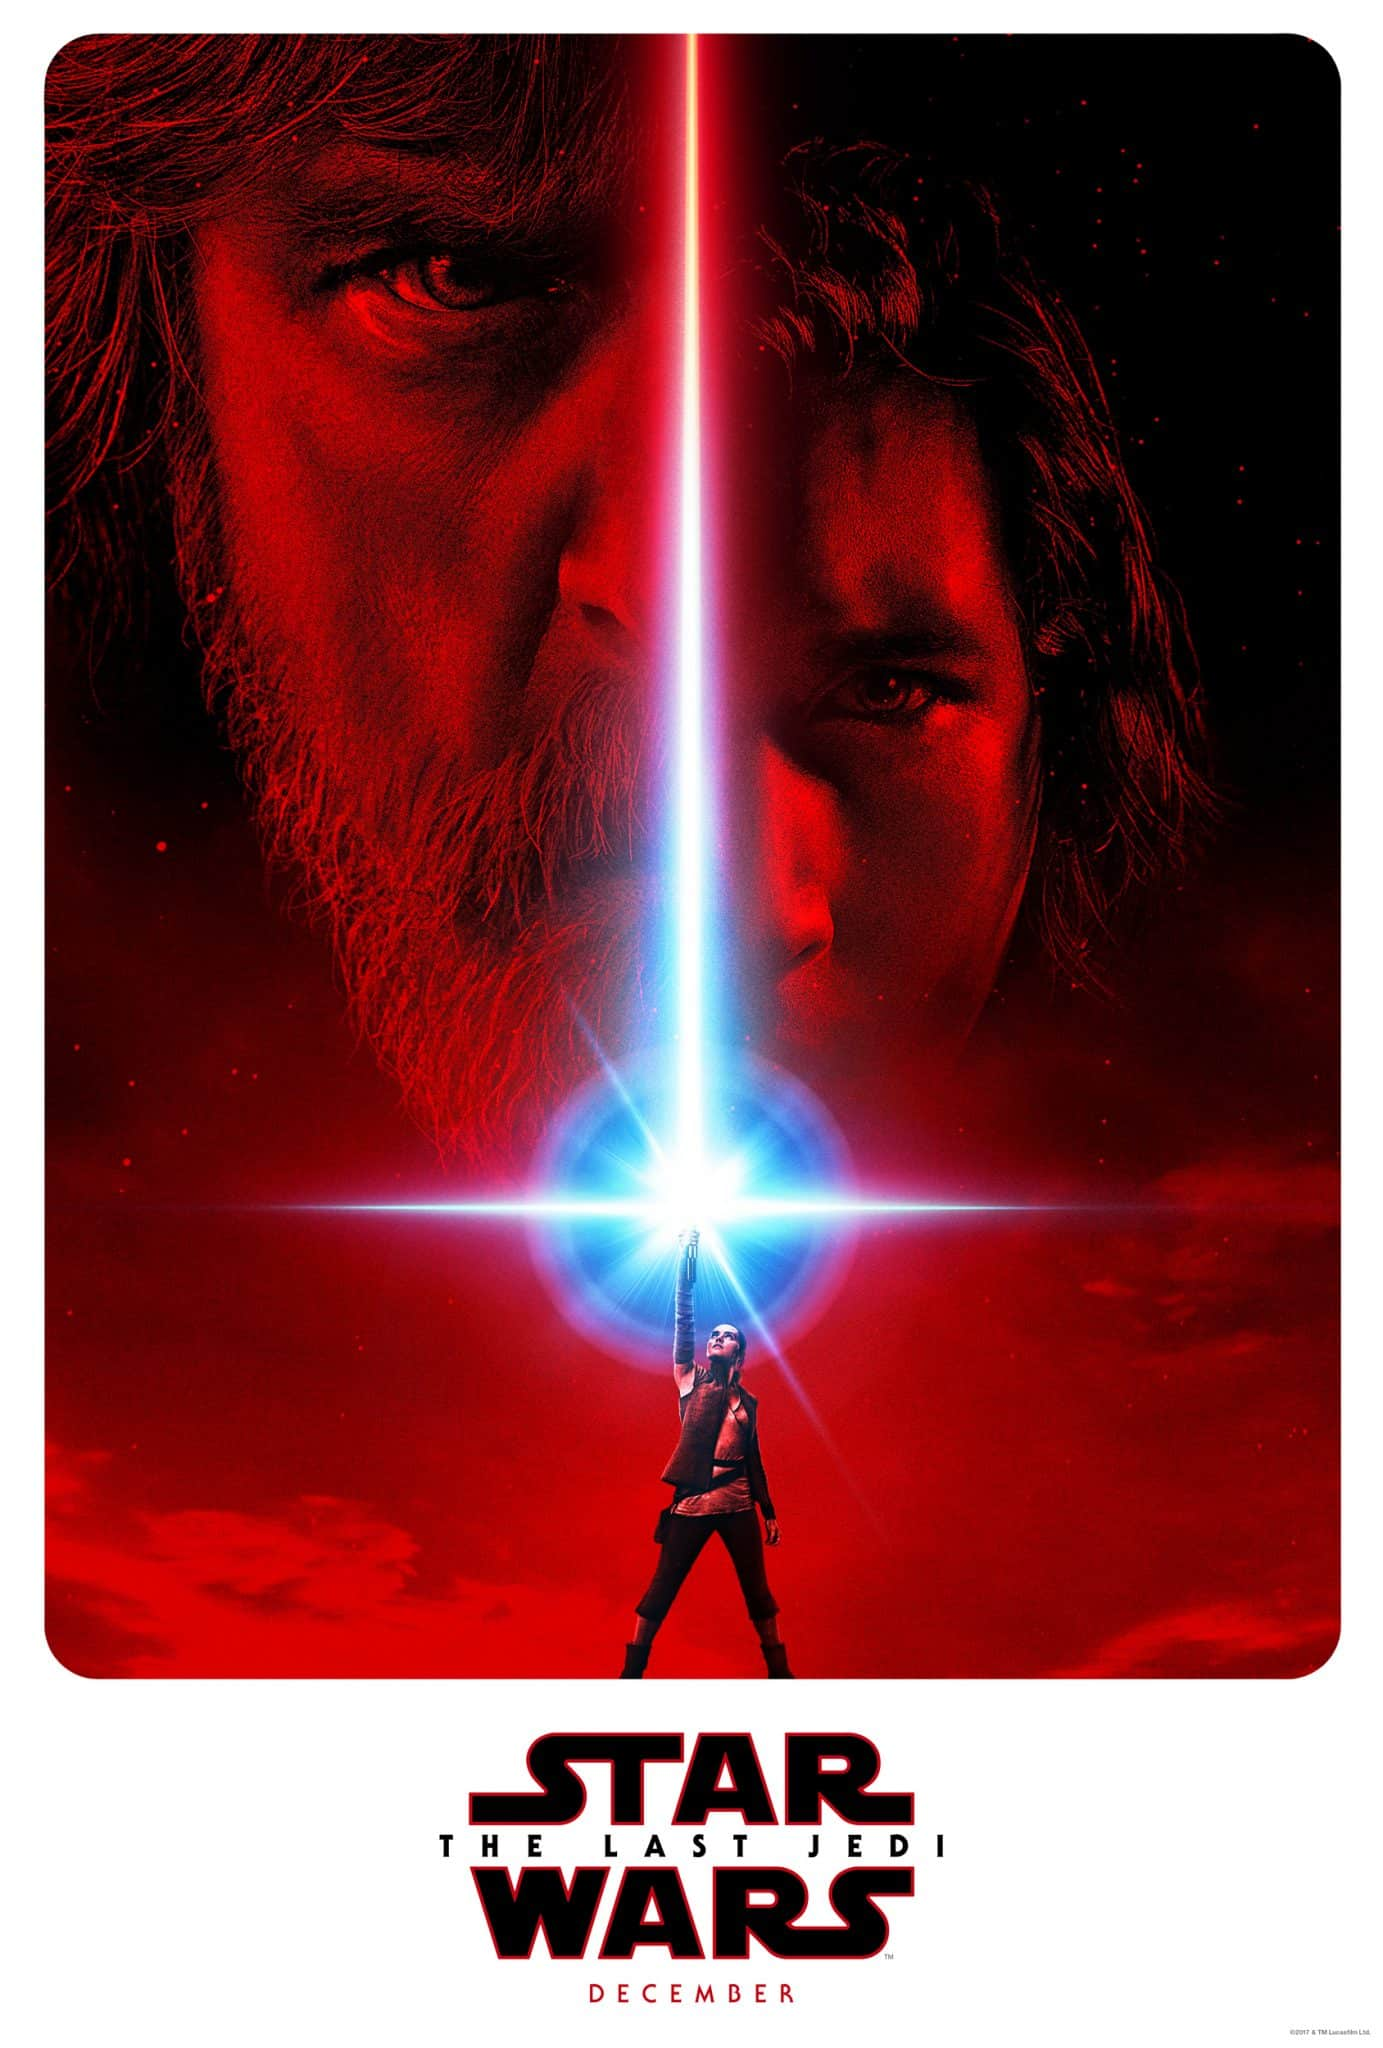 STAR WARS: THE LAST JEDI - New Teaser Trailer and Poster!!! #TheLastJedi